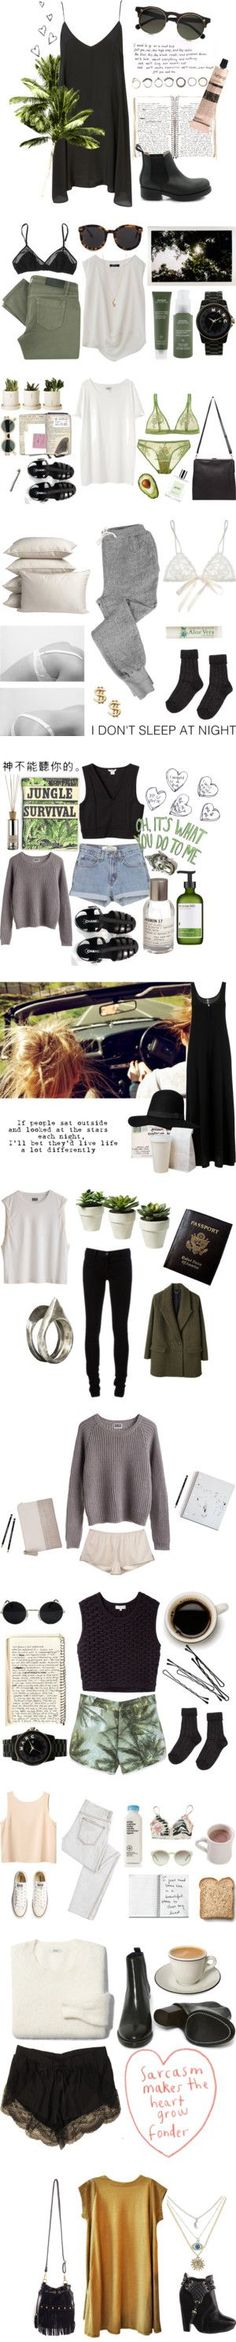 """Europe"" by emleh liked on Polyvore"